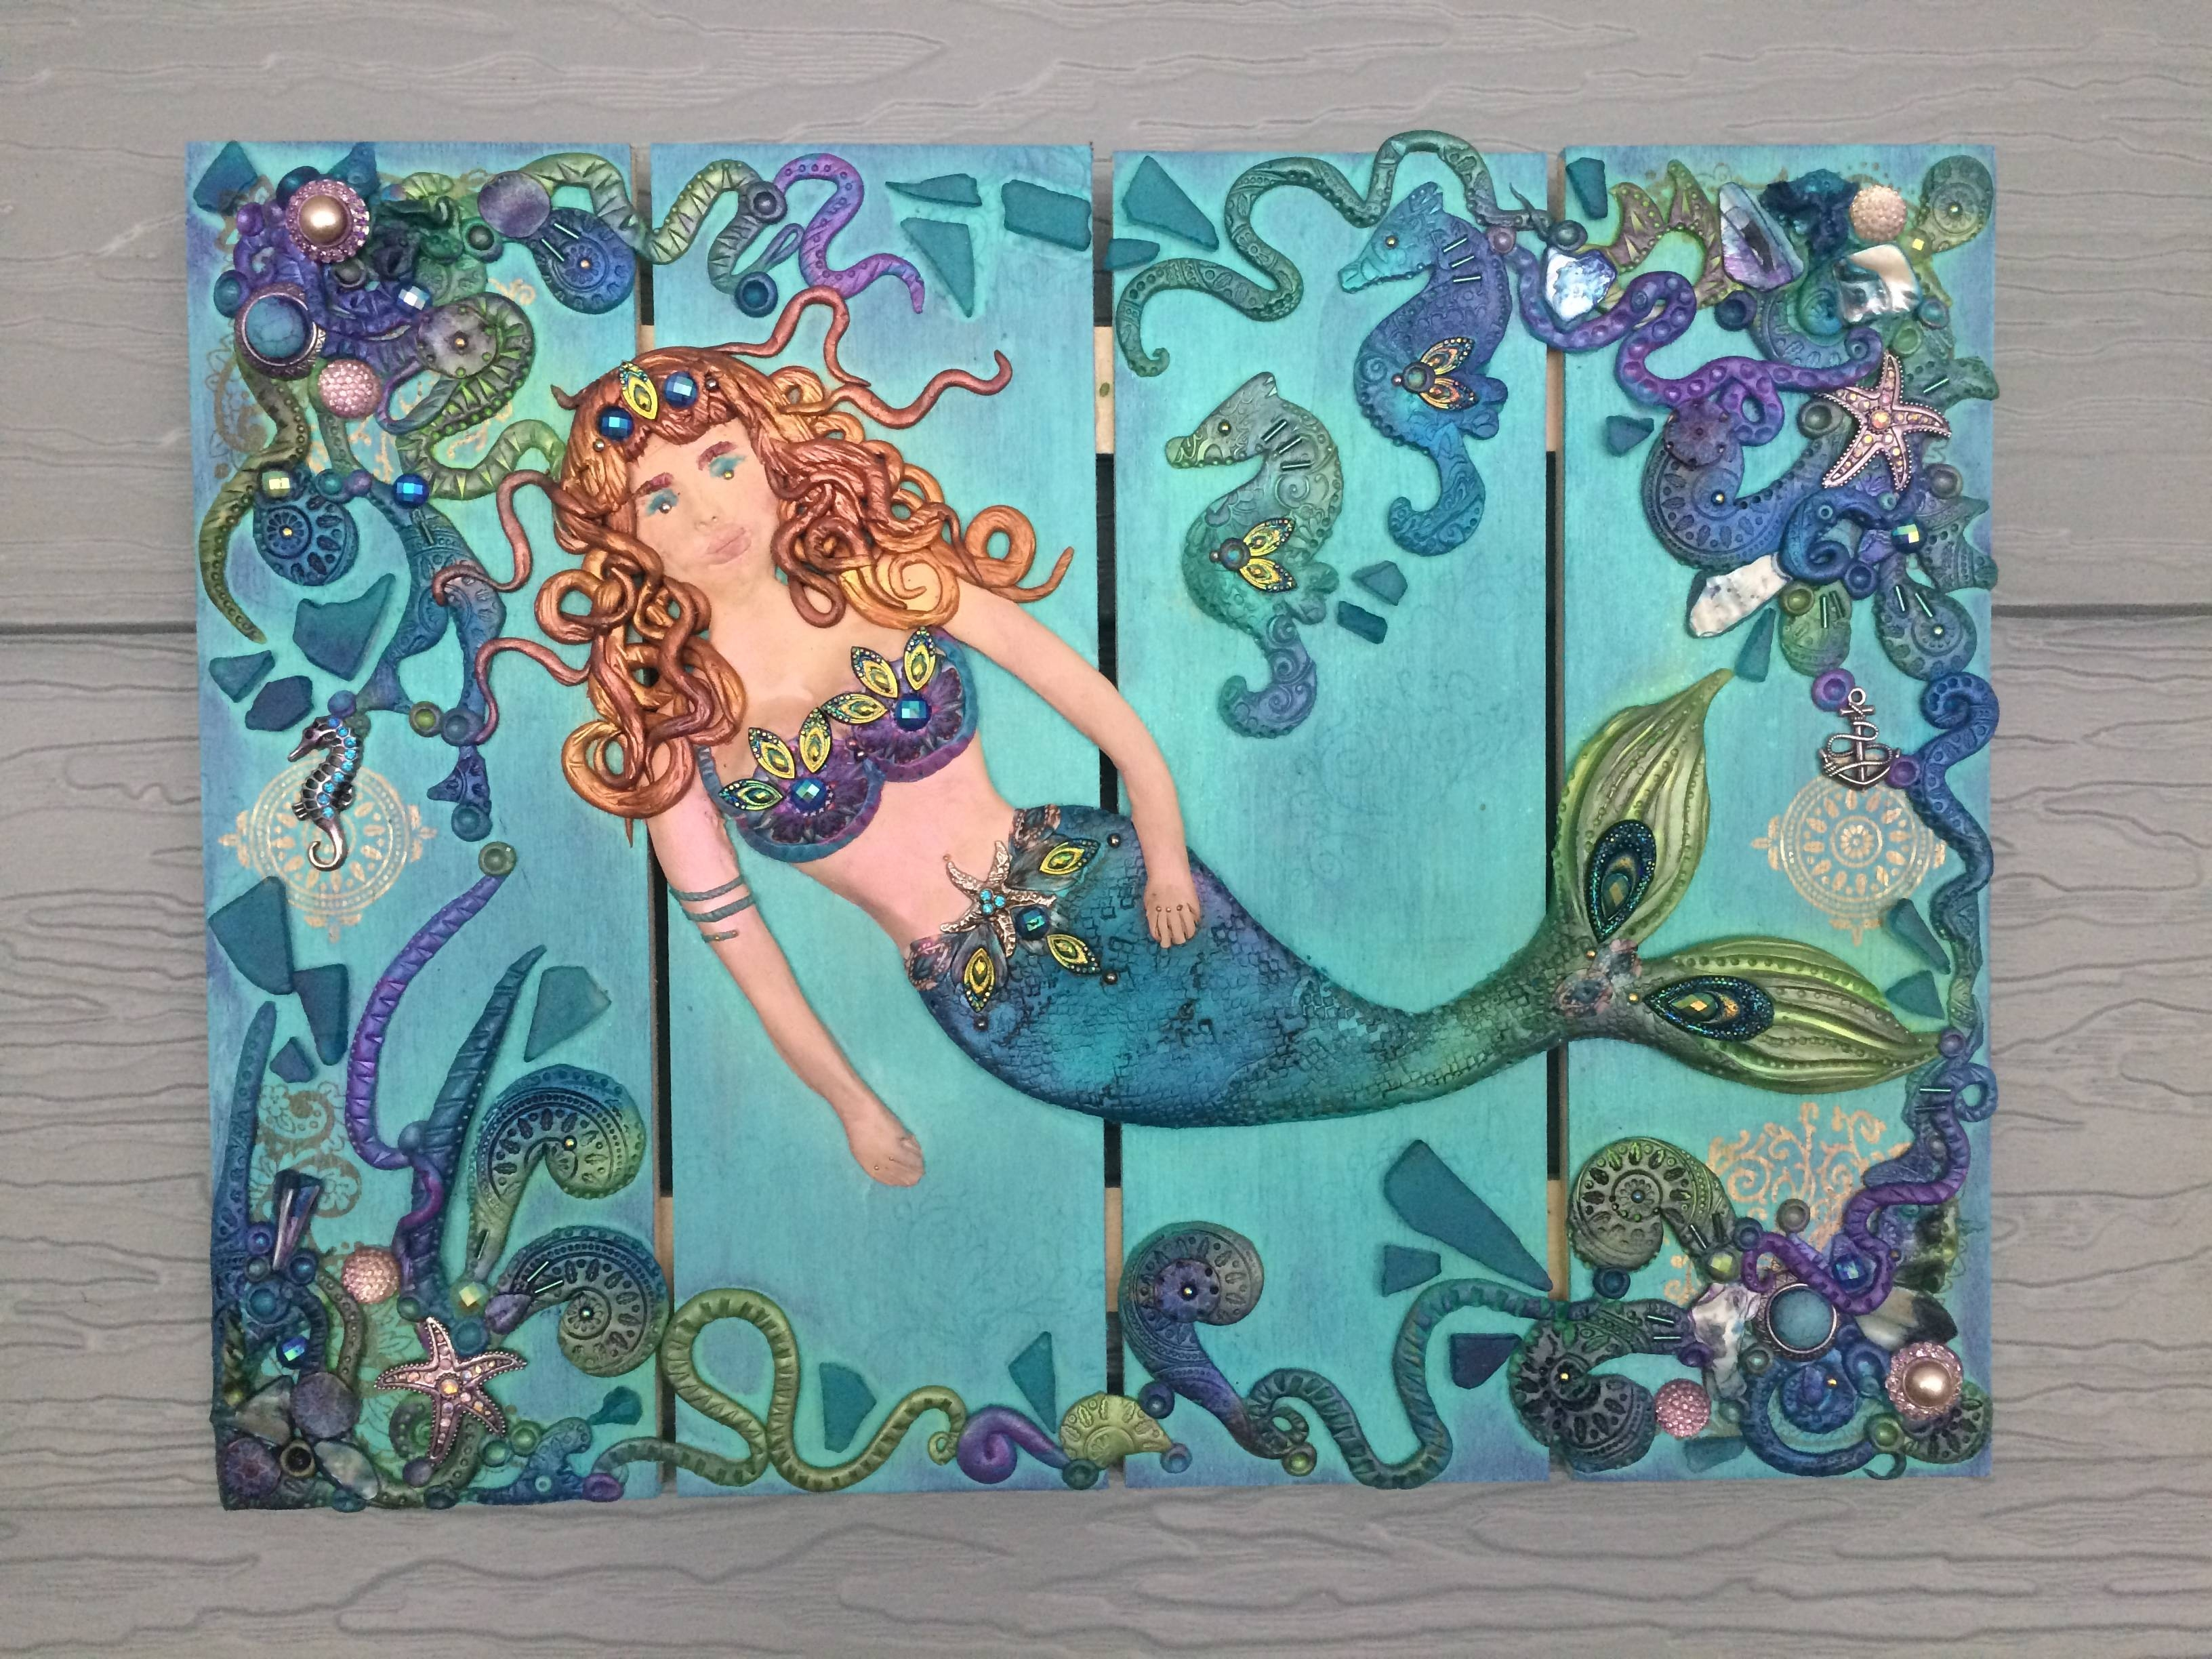 Handmade Polymer Clay Hanging Mermaid Wall Plaque | The Clay Monet Within Best And Newest Polymer Clay Wall Art (View 18 of 20)